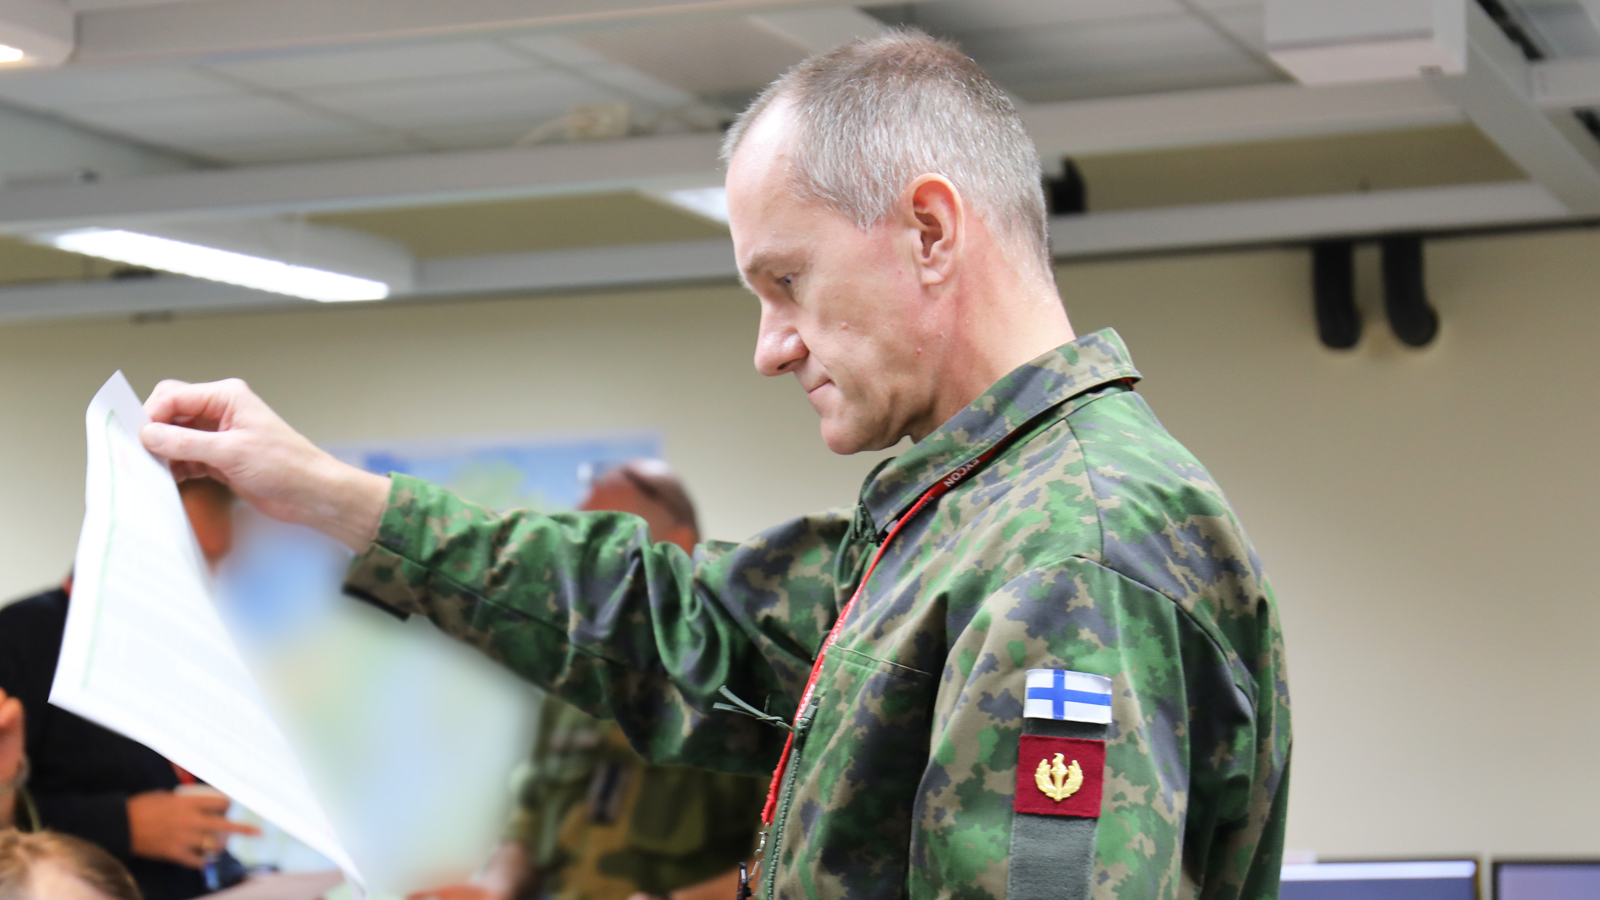 The JWC conducts scenario wargame in preparation of TRIDENT JUNCTURE 18